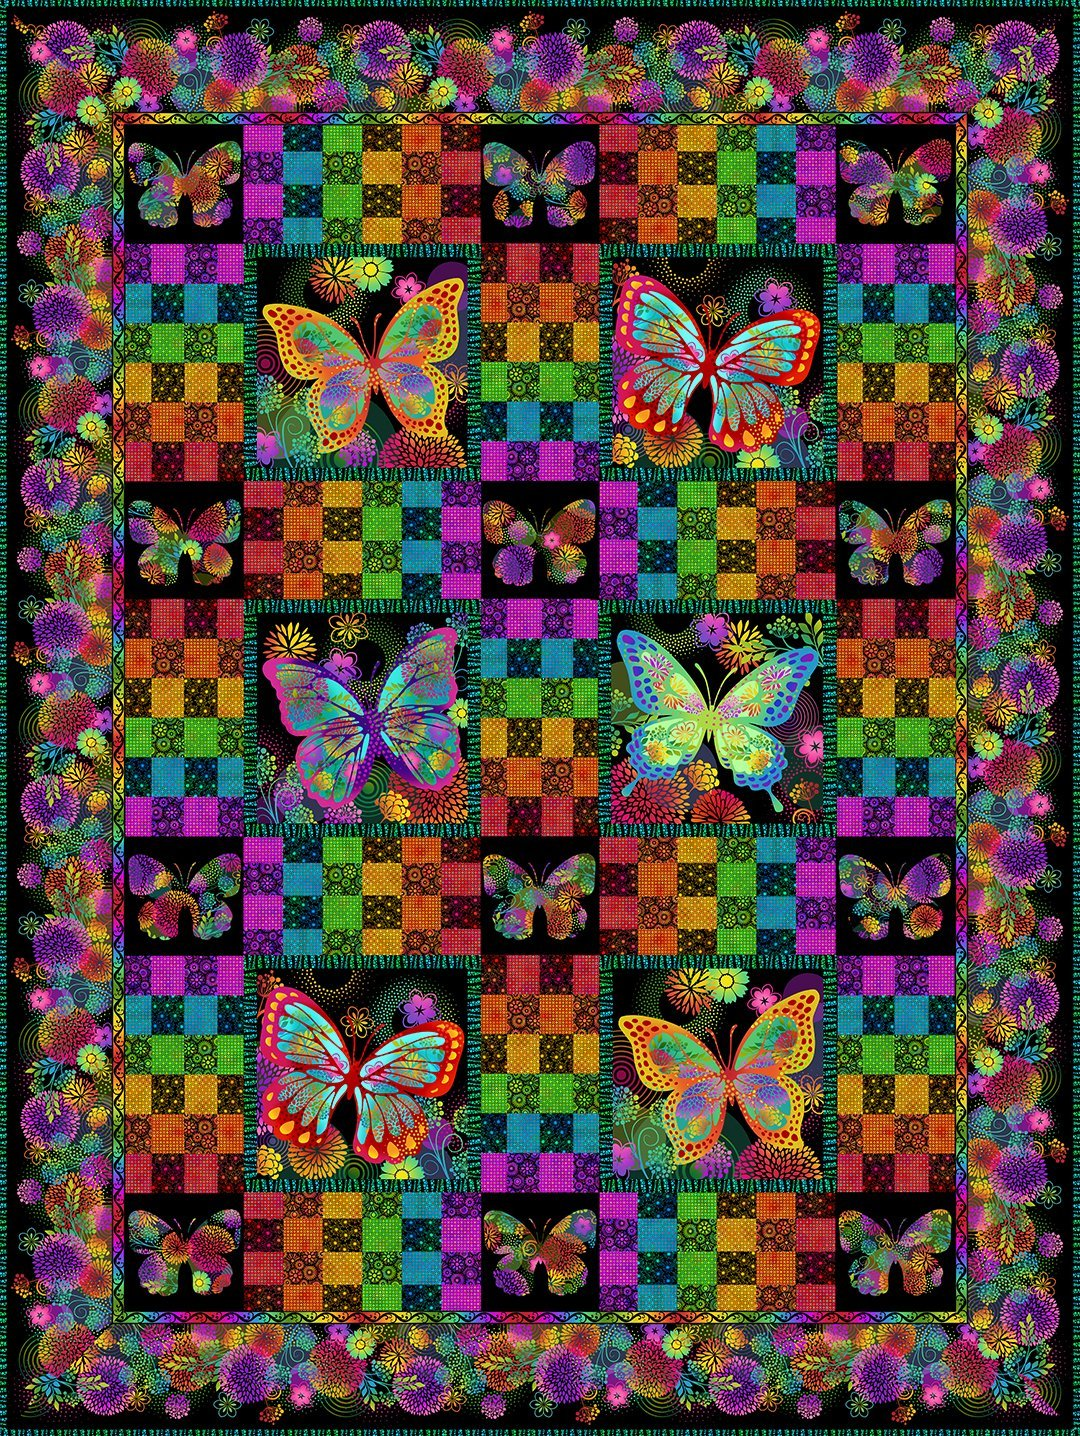 Unusual Garden II Butterfly Quilt - Kit